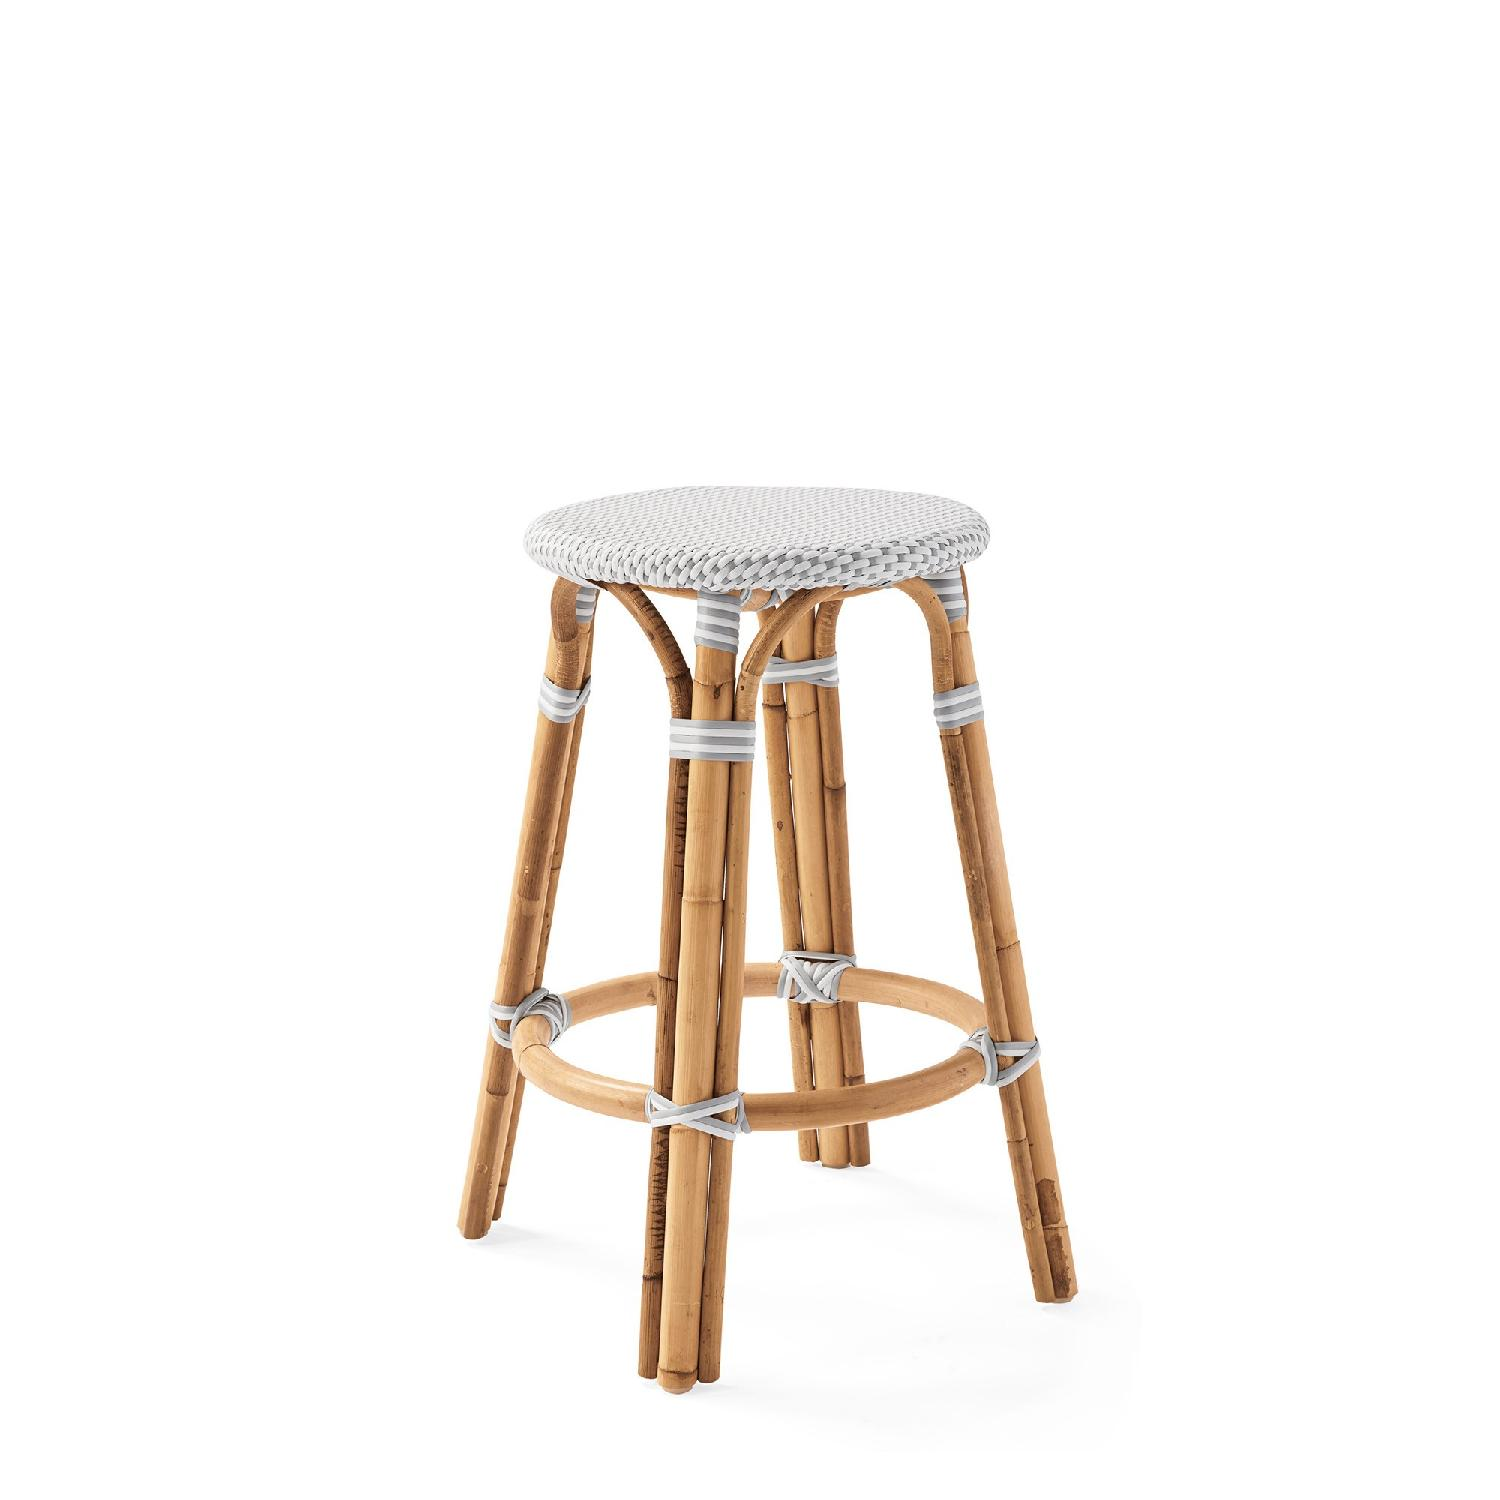 Serena & Lily Riviera Backless Counter Stools